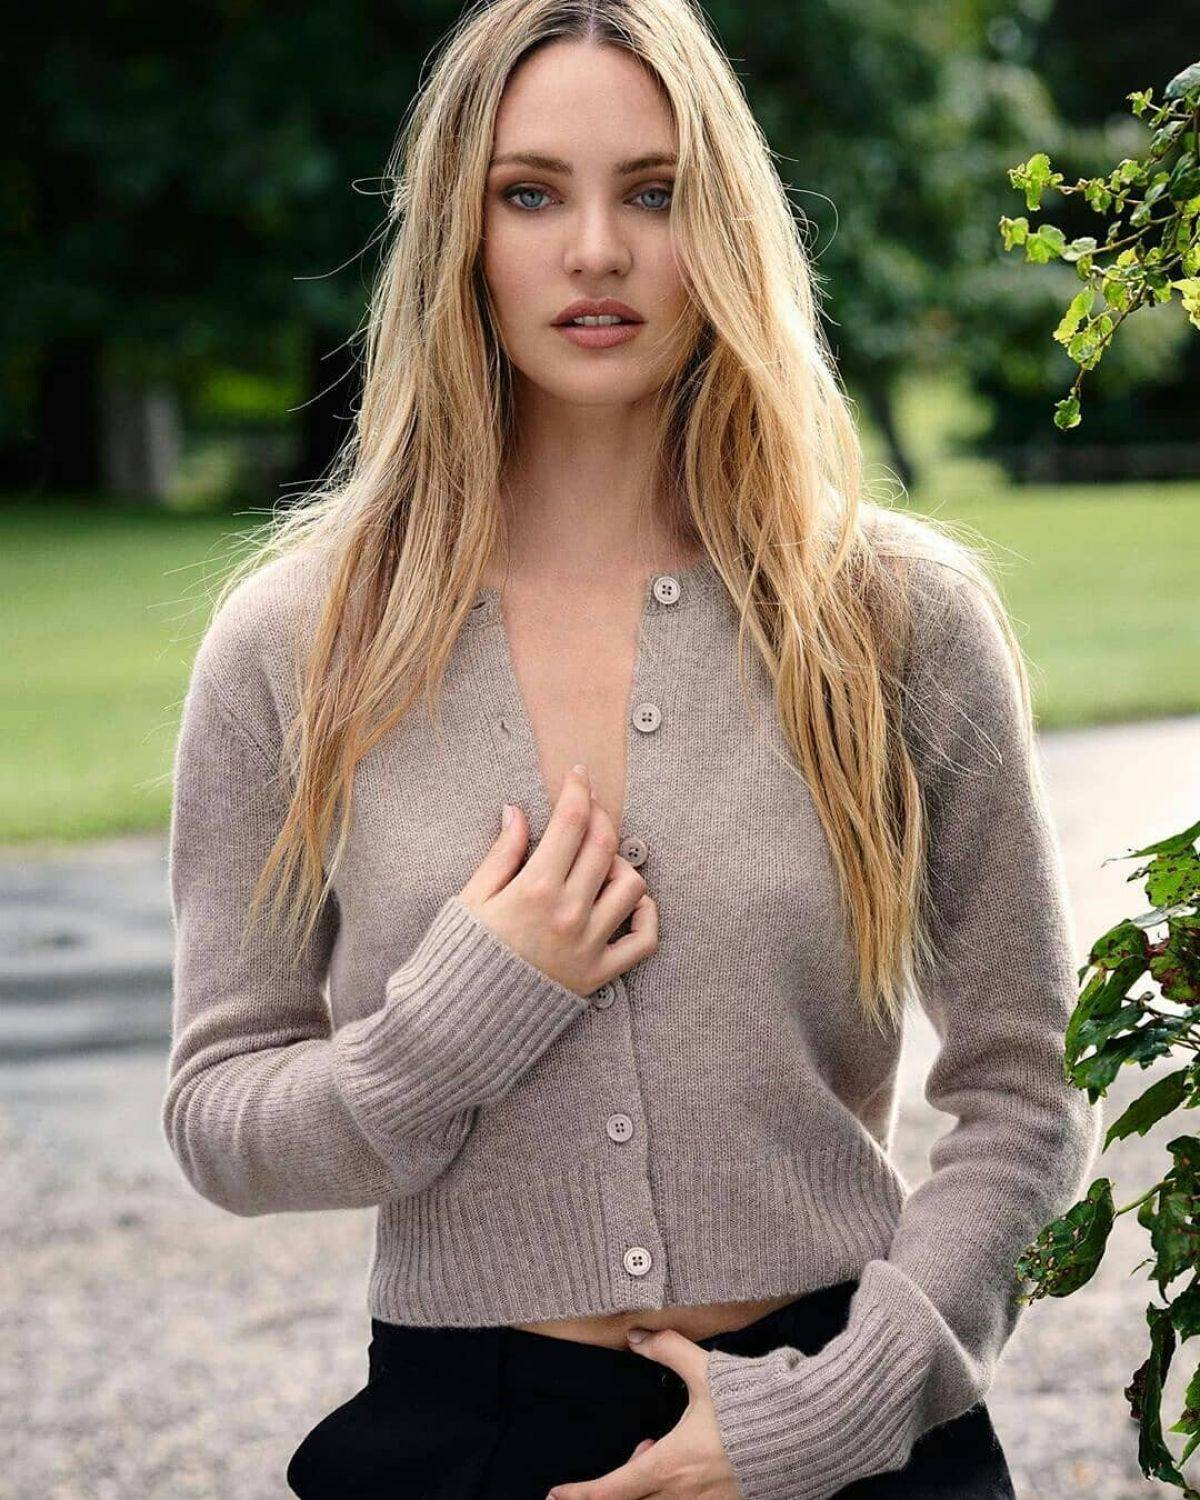 Candice Swanepoel - Beautiful in Naked Cashmere Fall 2020 Photoshoot   Hot Celebs Home